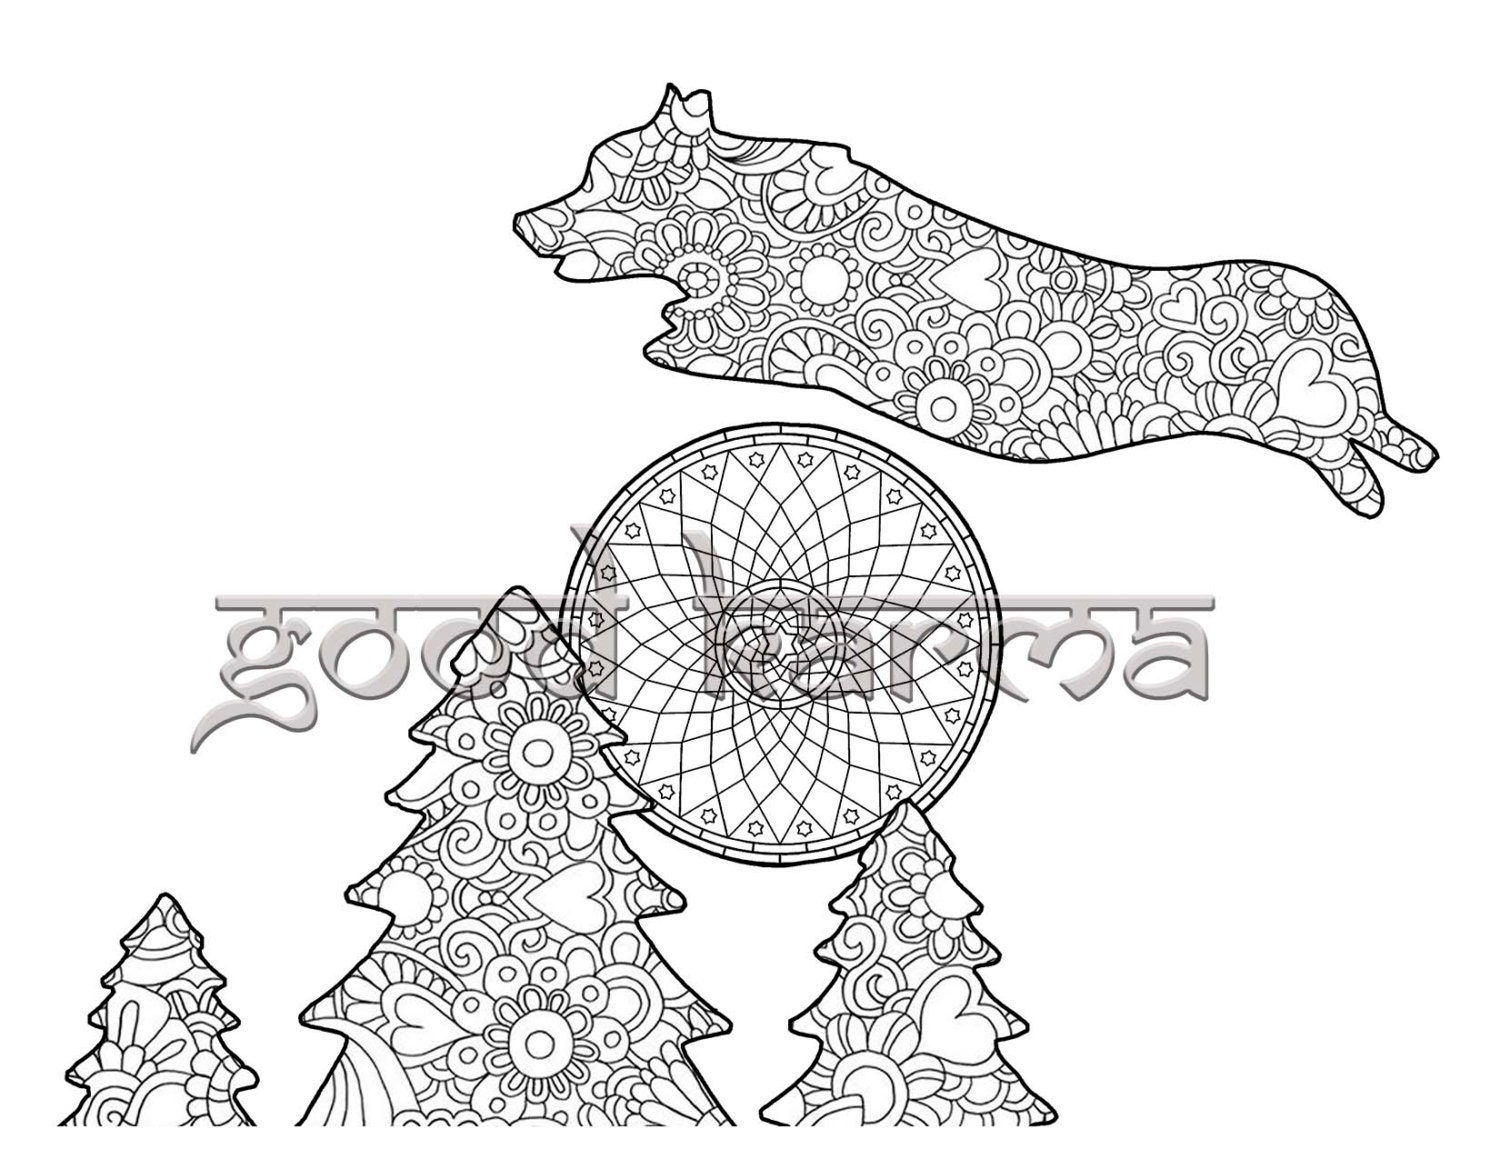 corgi coloring pages - the corgi coloring book page 9 by thekarmakart on etsy